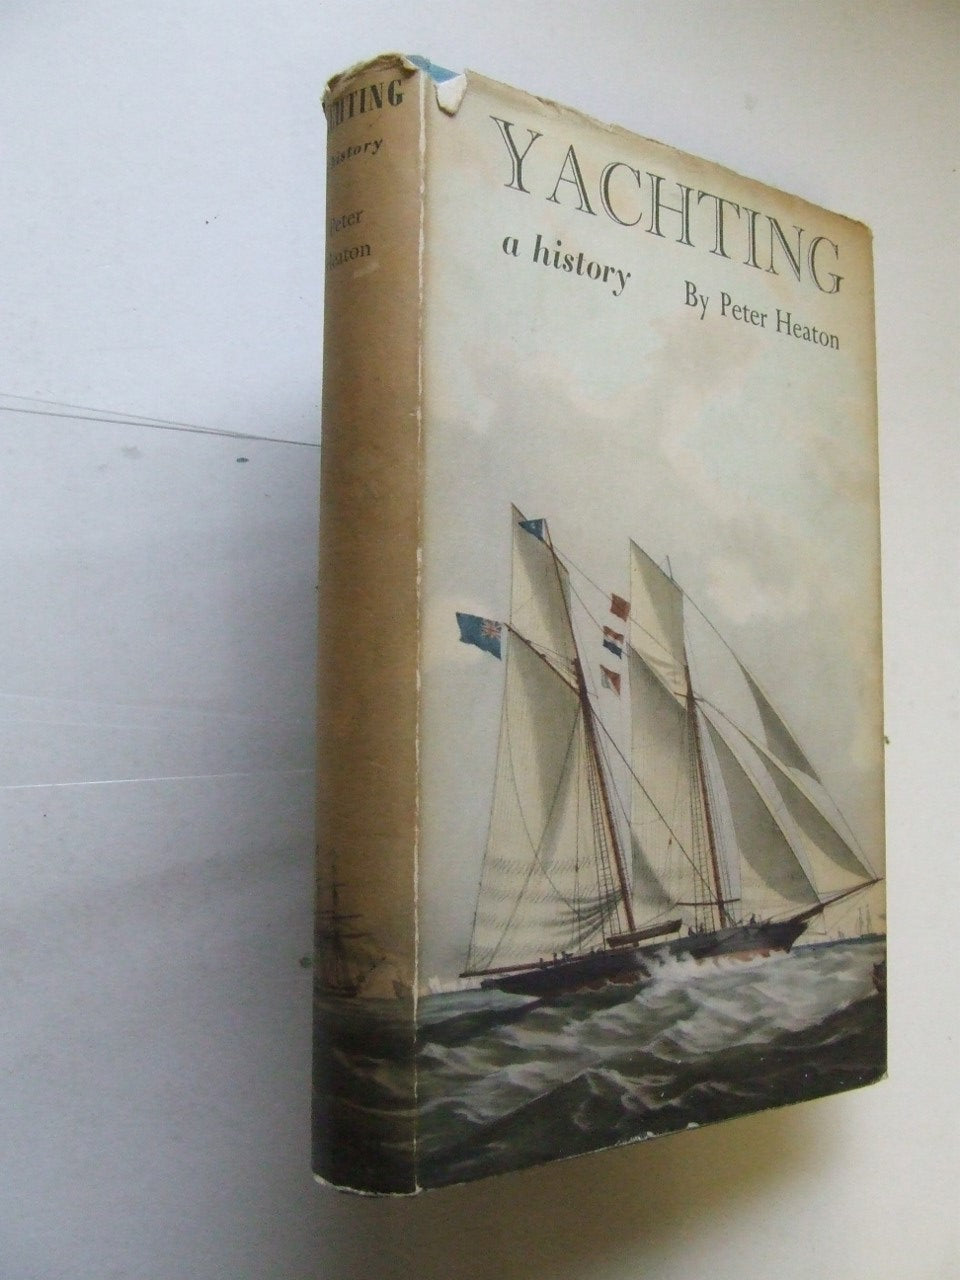 Yachting, a history